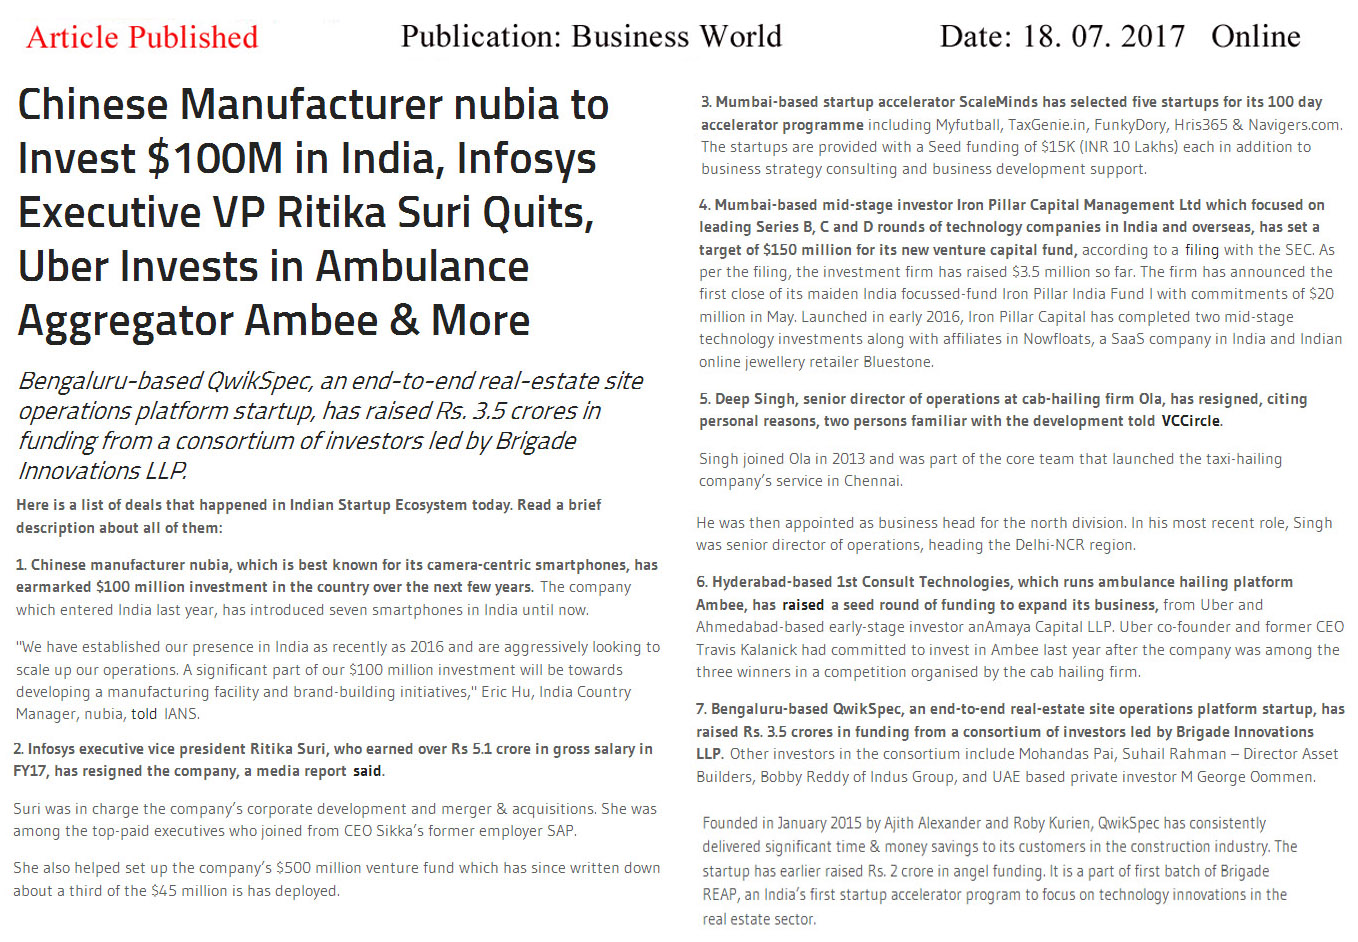 Chinese Manufacturer nubia to Invest $100M in India, Infosys Executive VP Ritika Suri Quits, Uber Invests in Ambulance Aggregator Ambee & More—Business World-Qwickspec